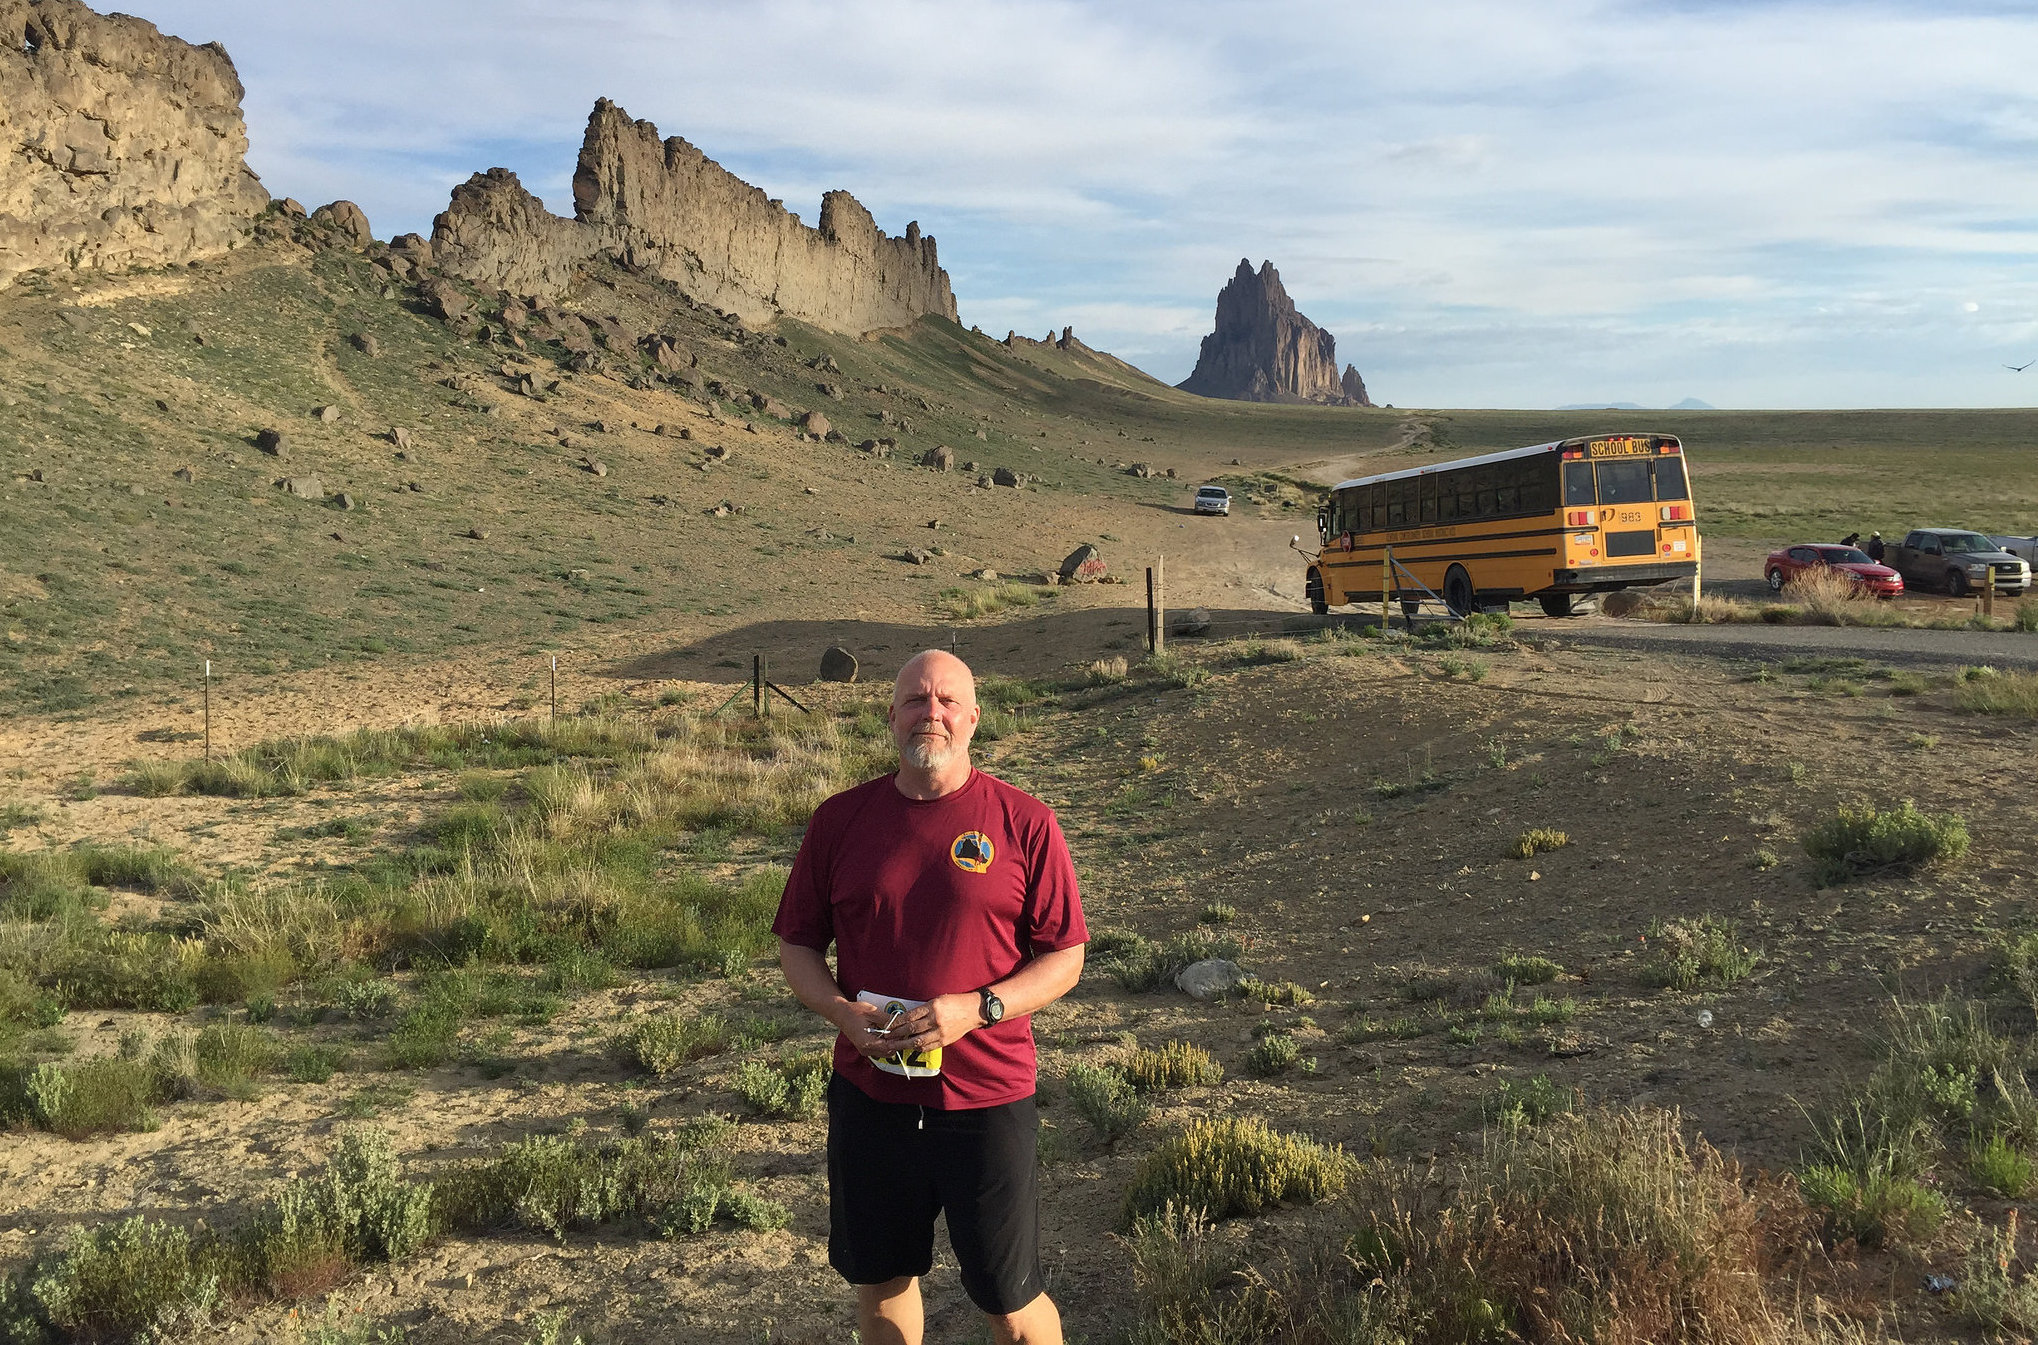 Me at Start of Shiprock Half-Marathon